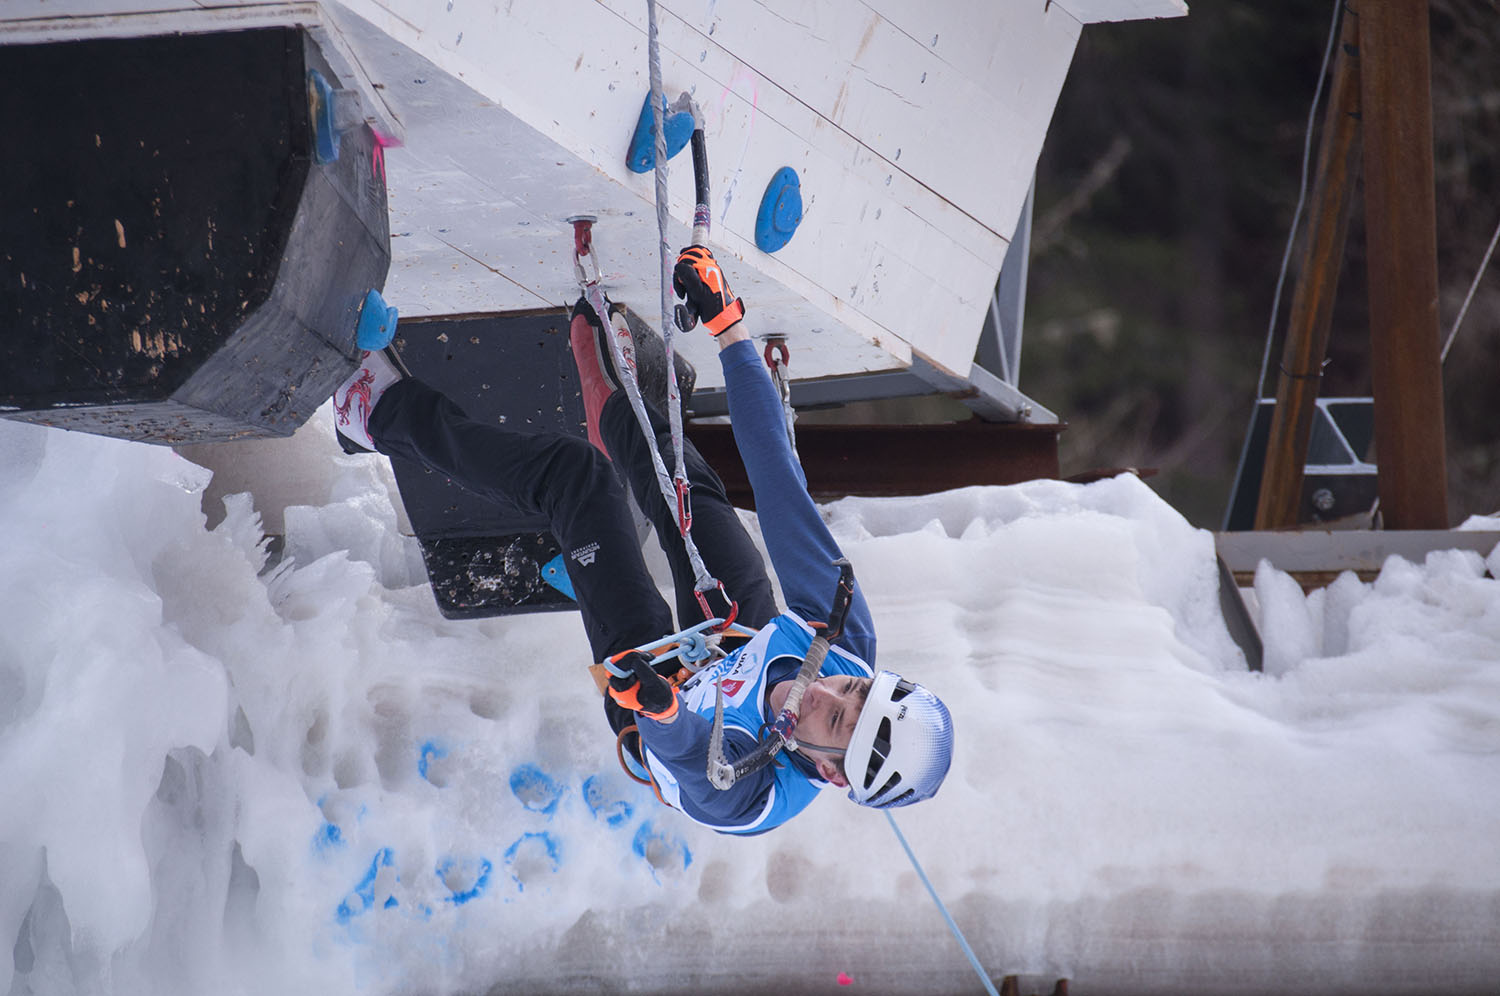 Justin Willis competing at the UIAA Ice Climbing World Cup in Rabenstein Italy